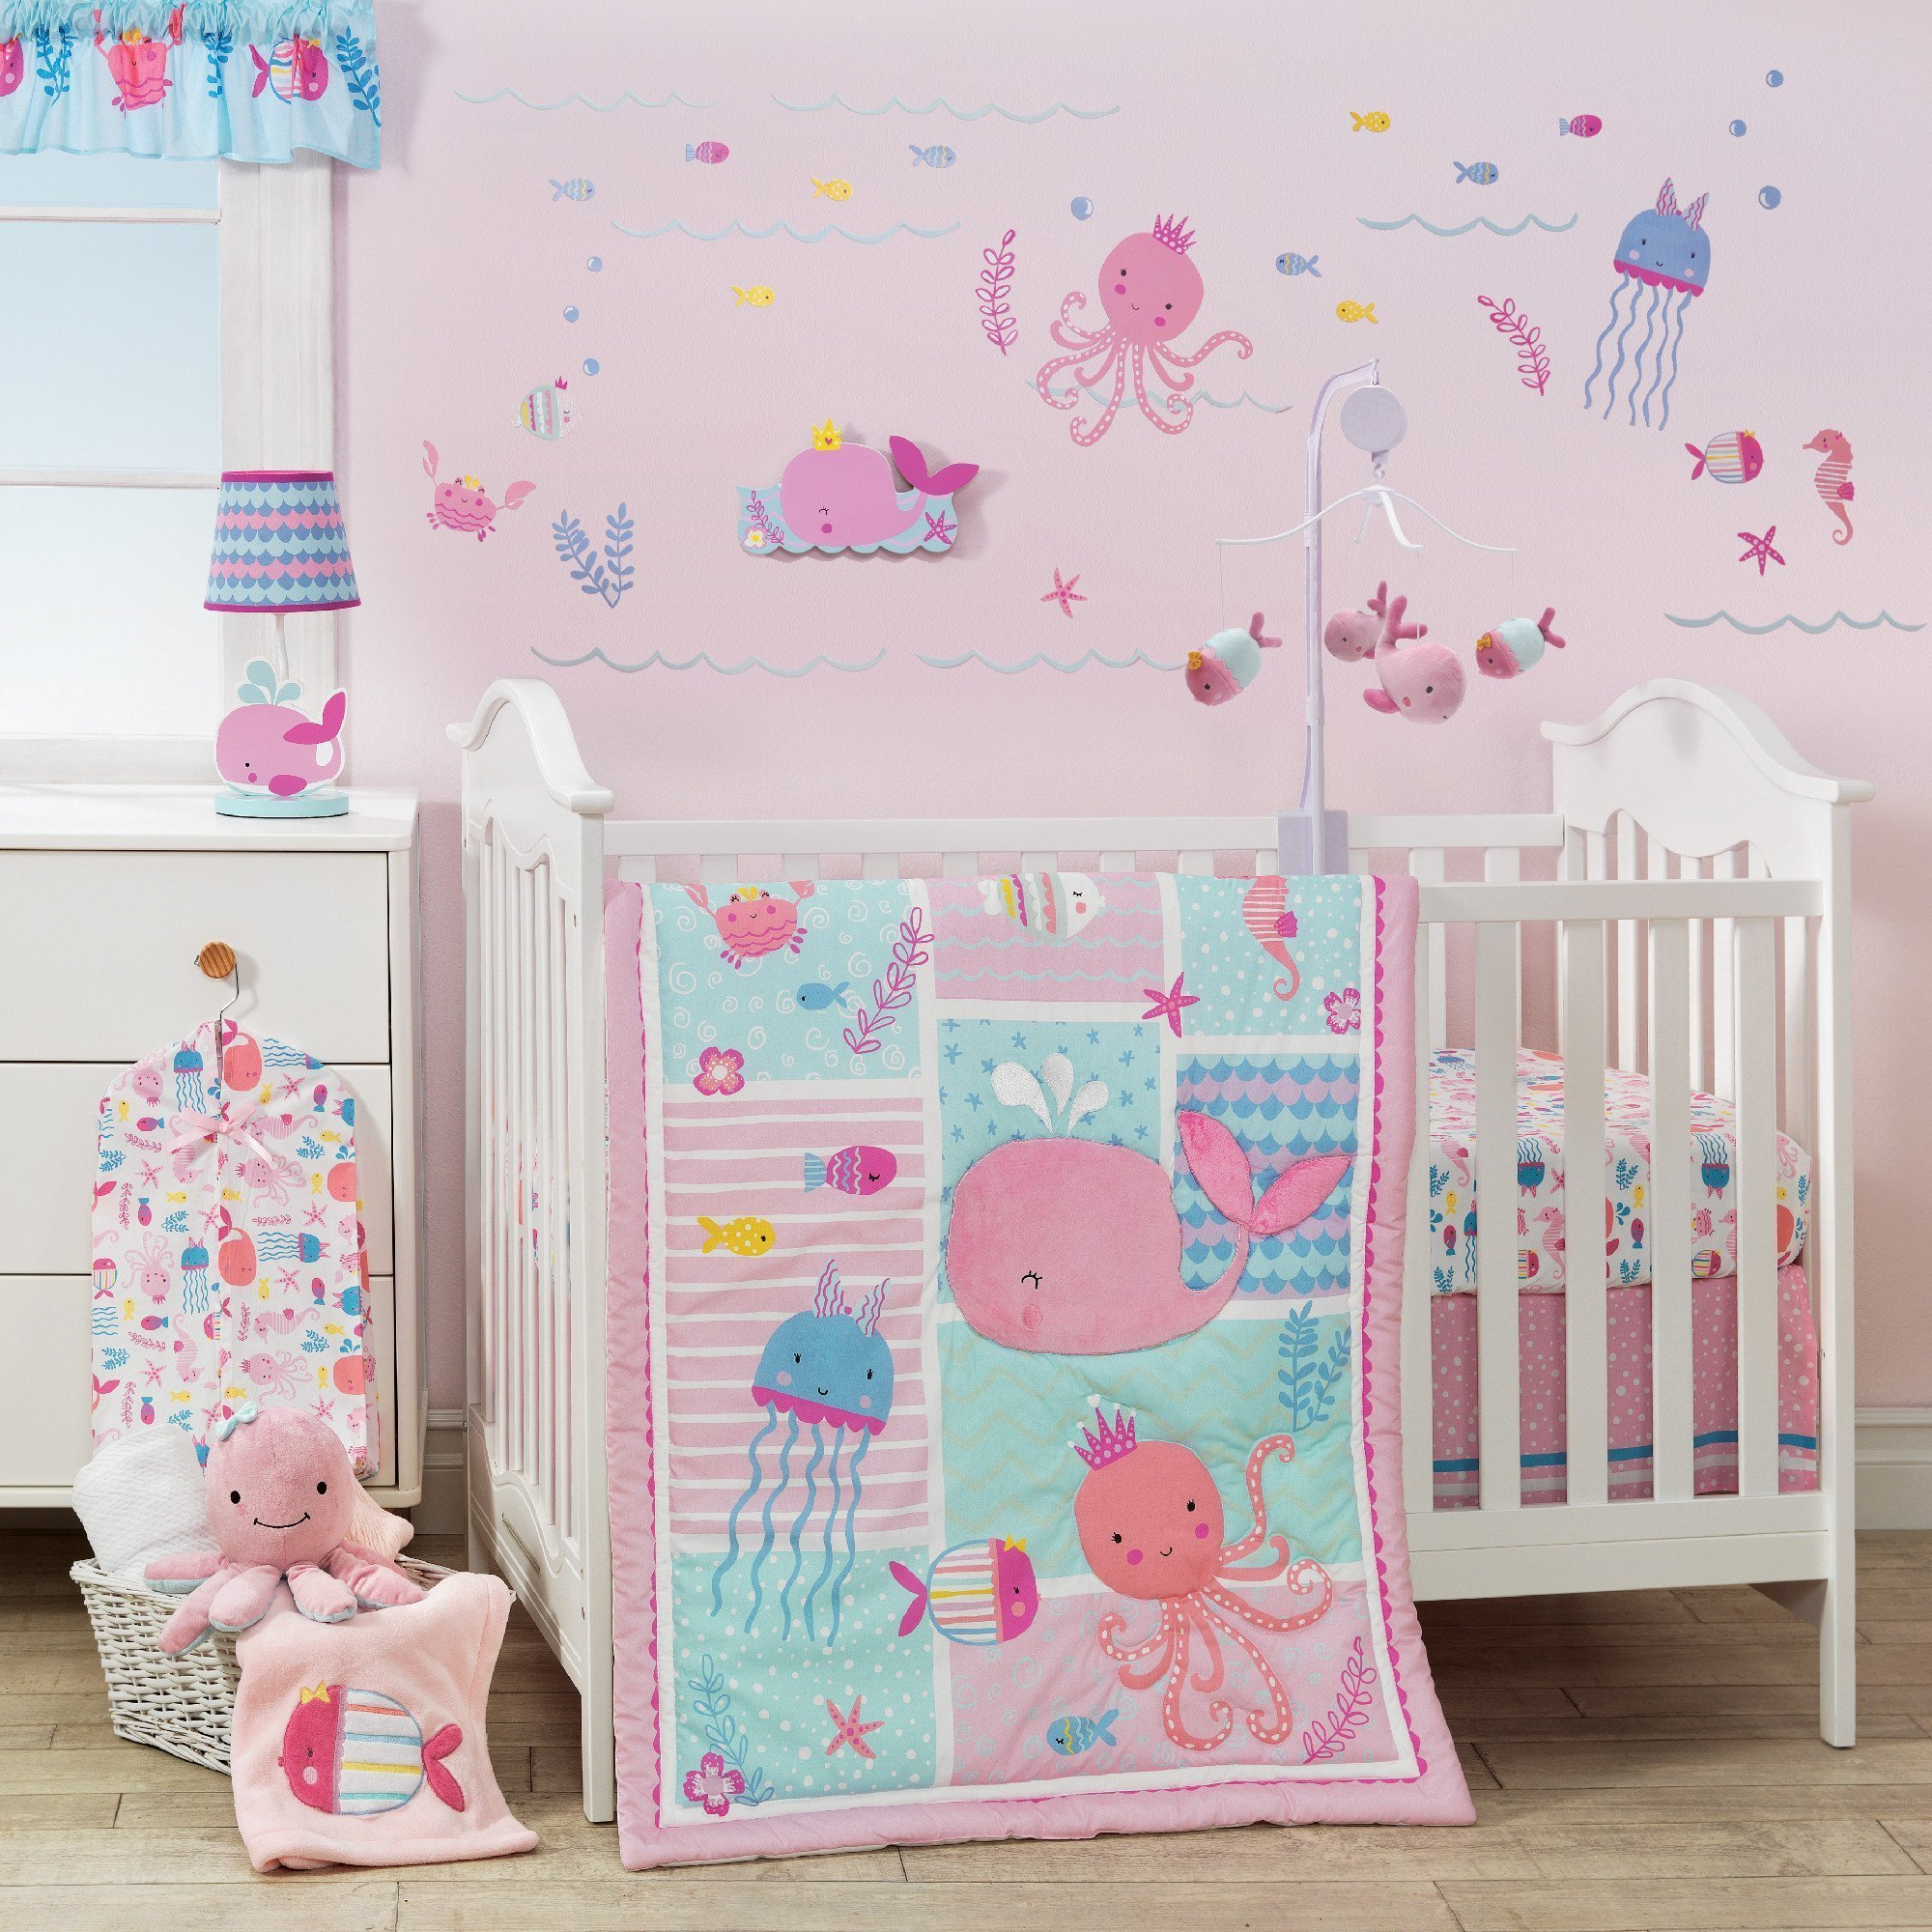 Bedtime Originals Sugar Reef 10-Piece Nursery to Go Crib Bedding Set